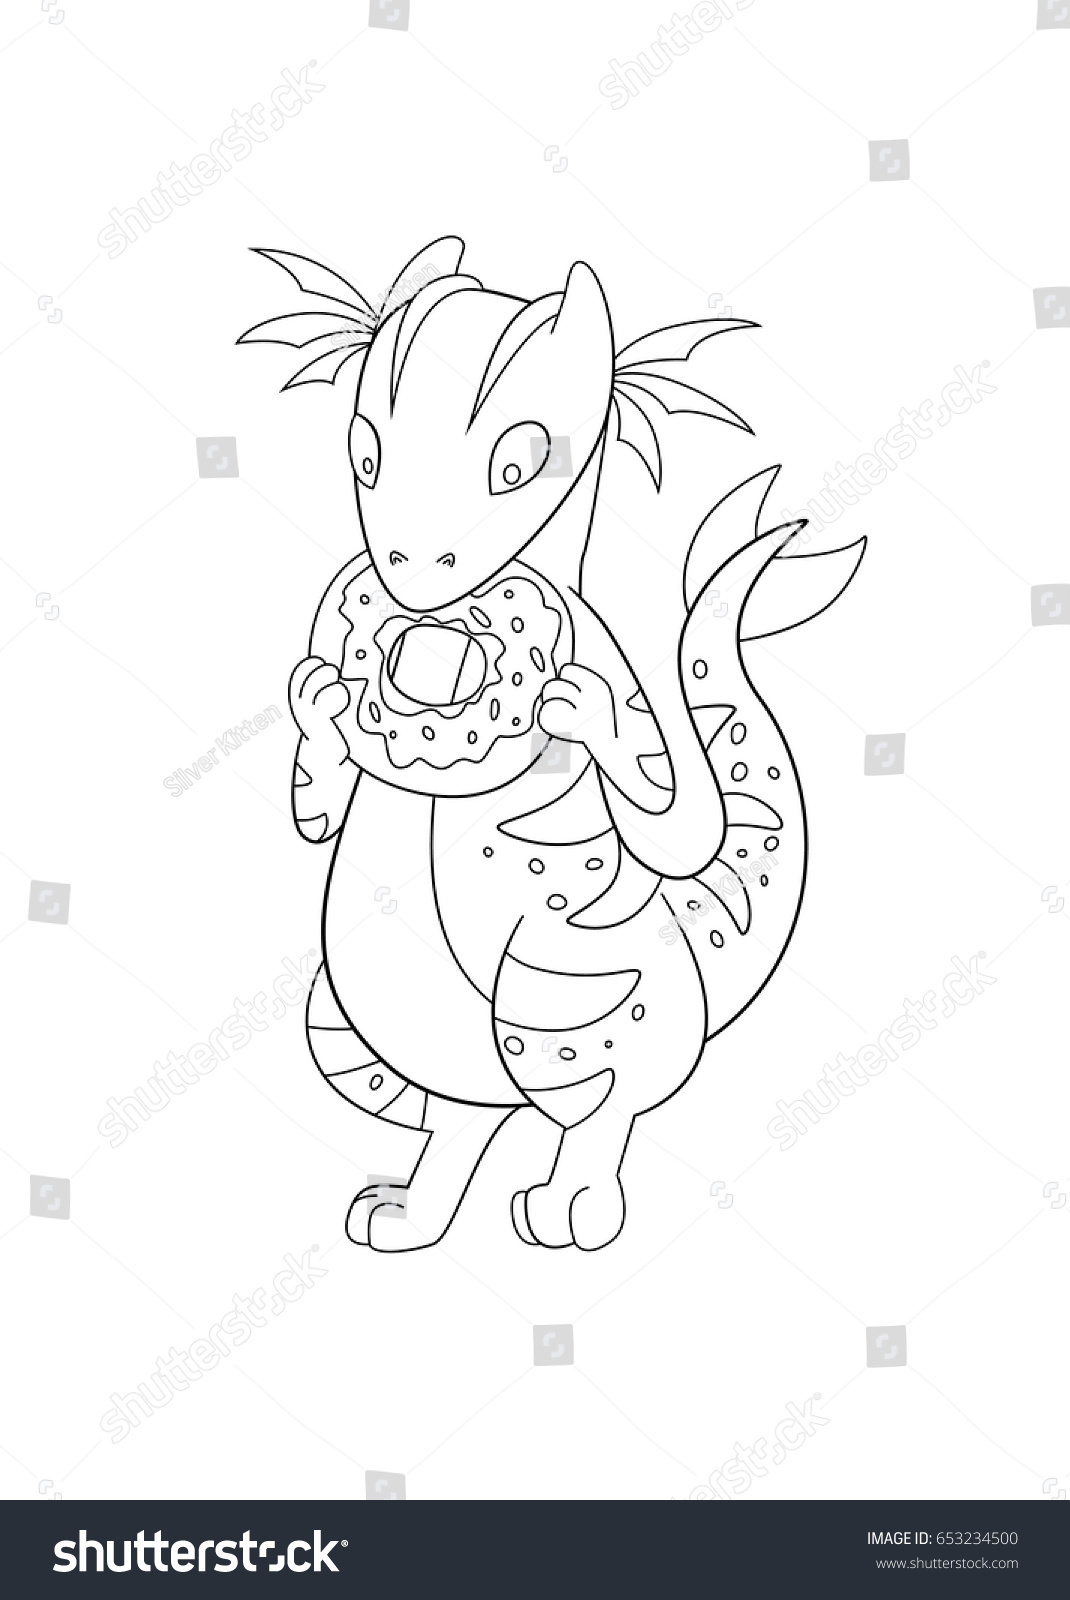 Coloring Book Page Cute Dragon Eating Stock Vector 653234500 ...